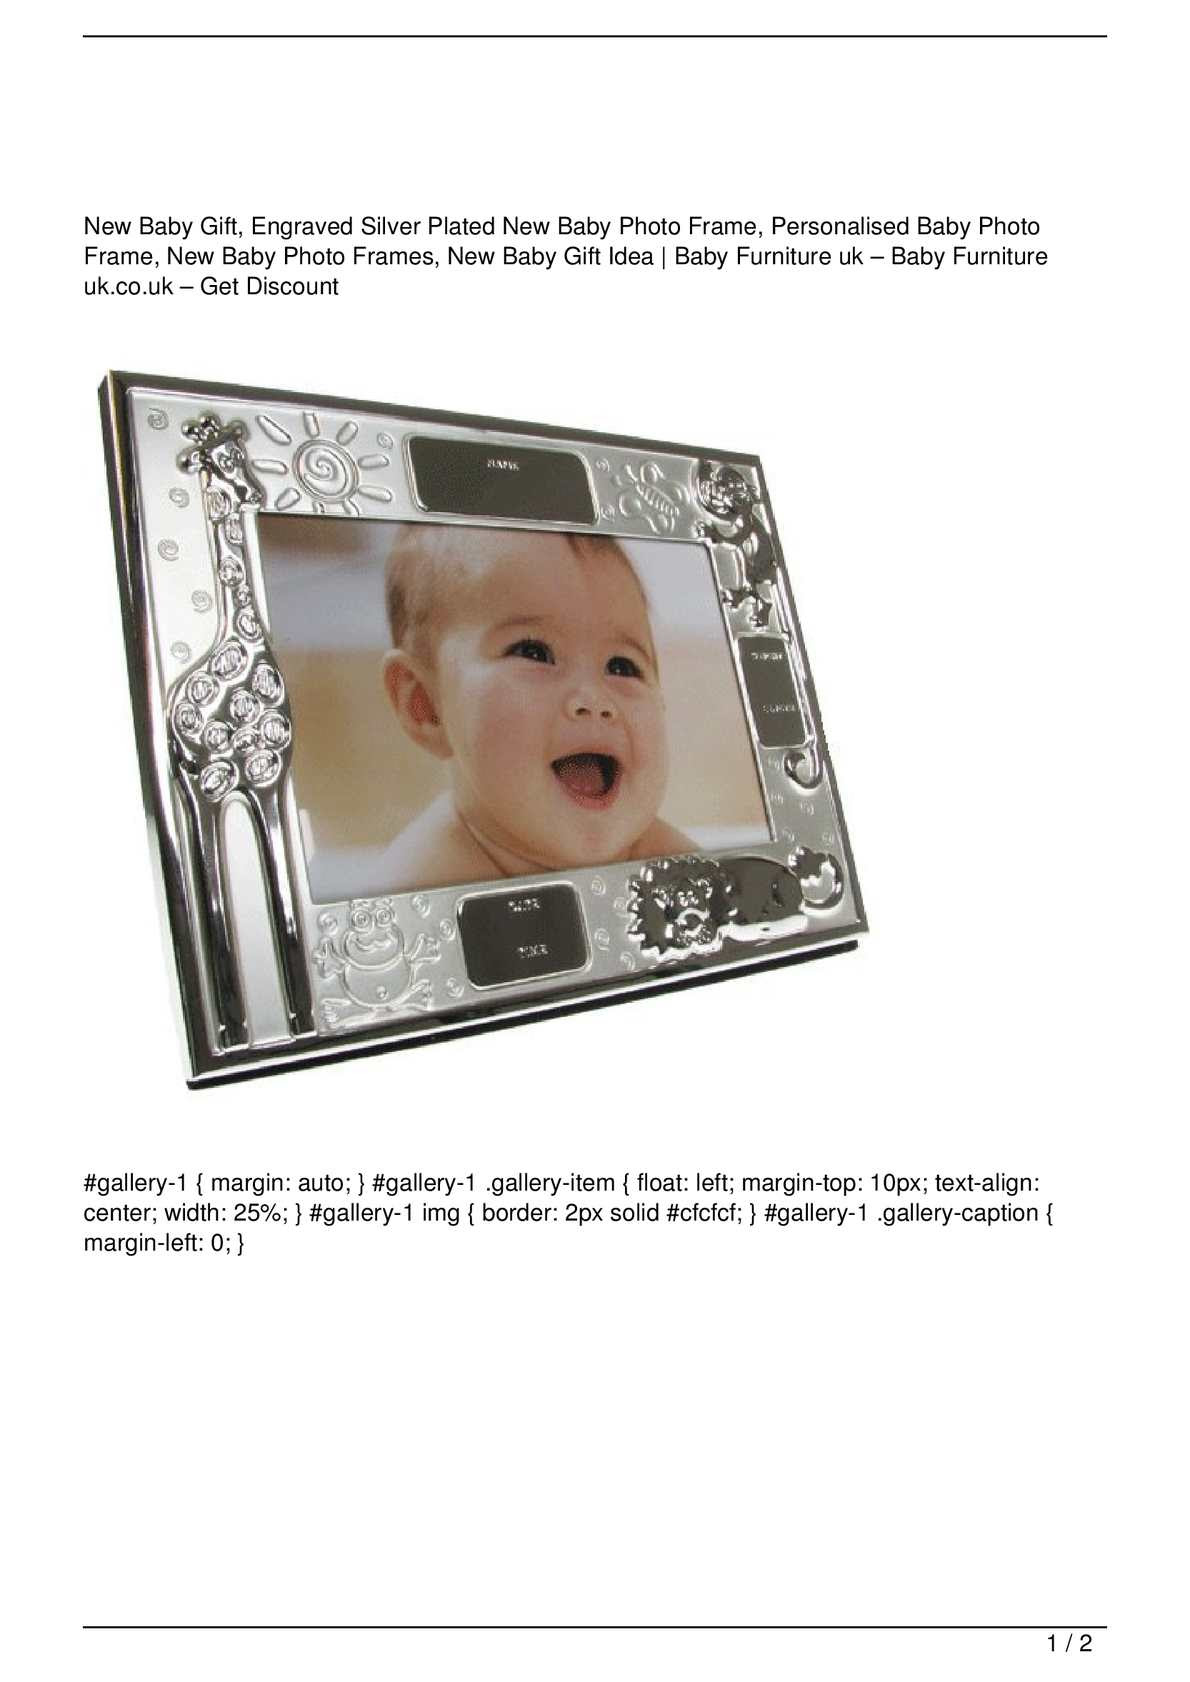 Engraved Silver Plated Baby Photo Album Personalised Baby Gift